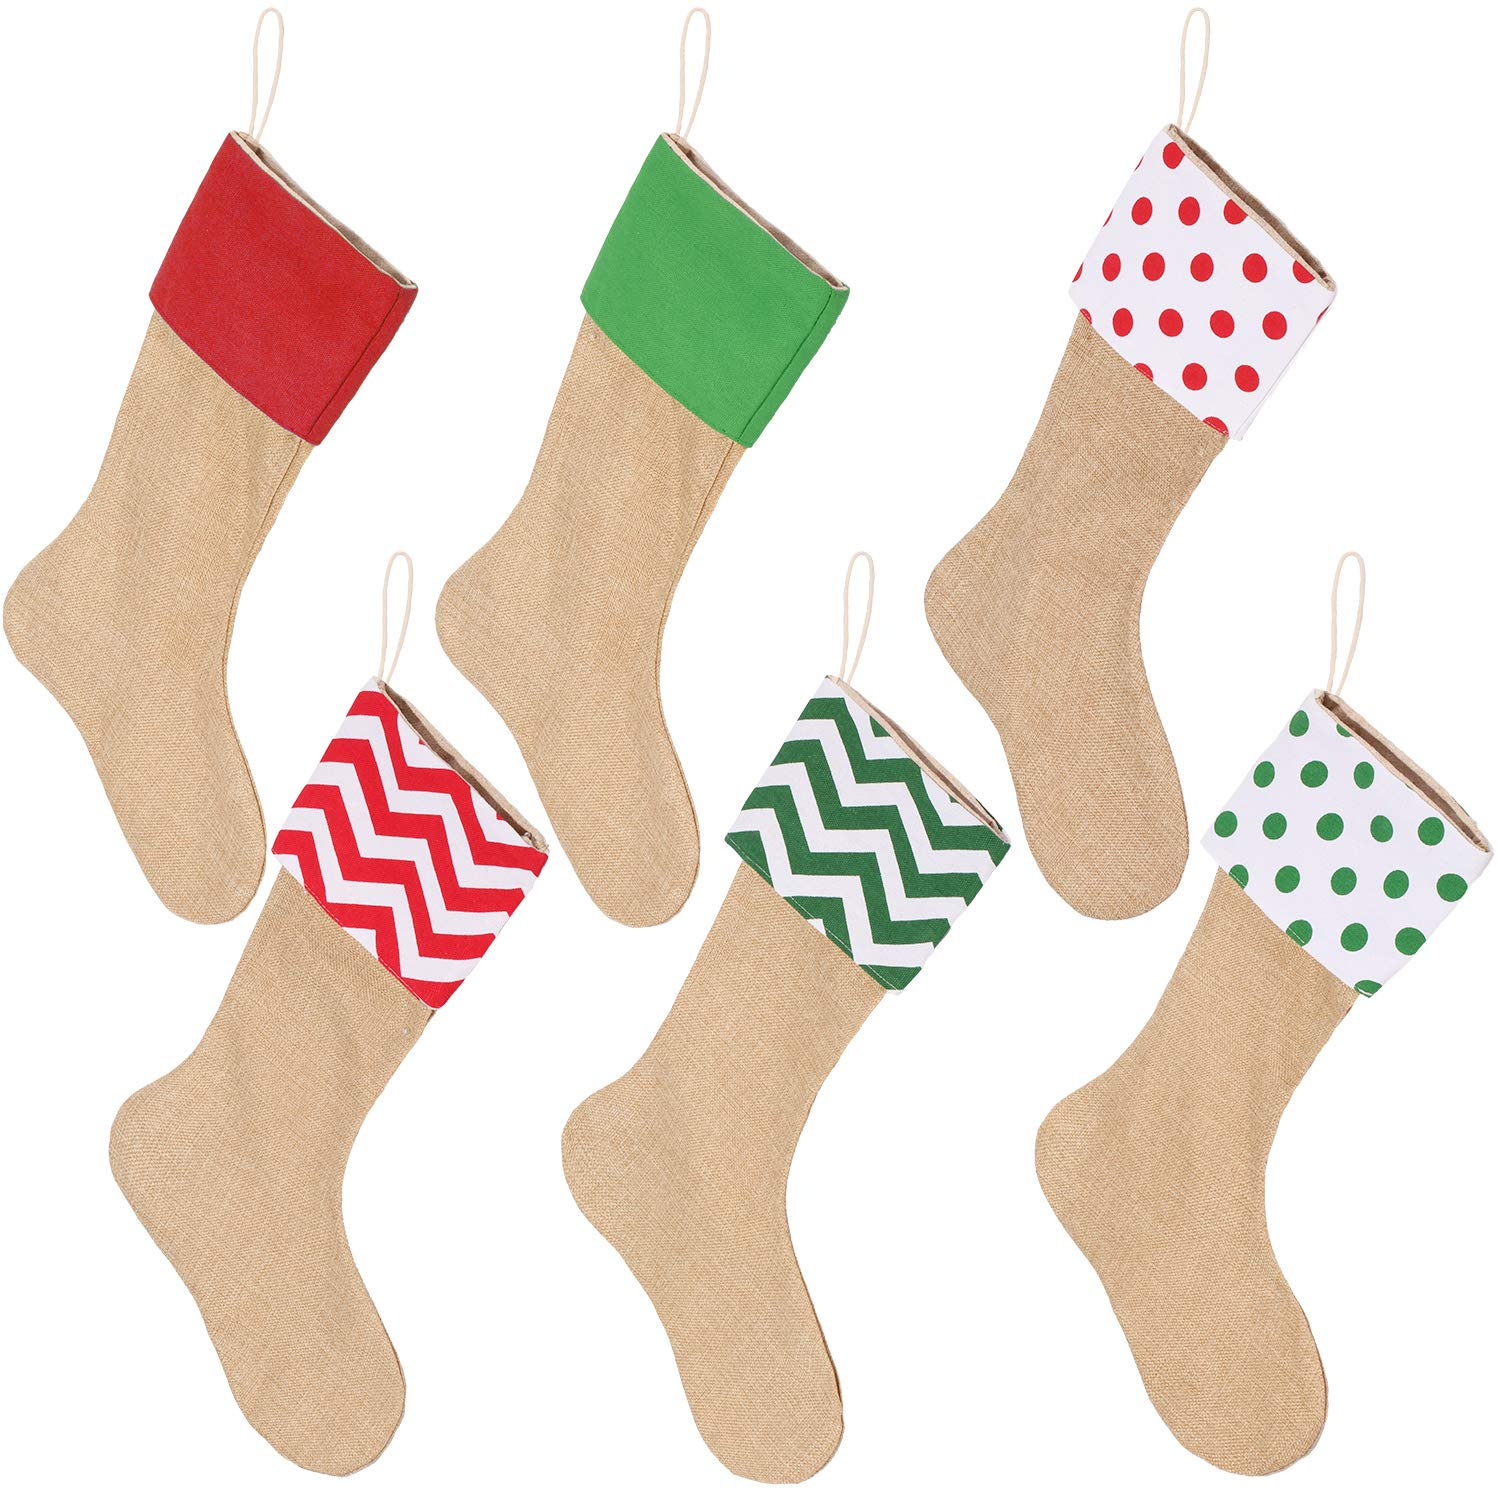 6 Packs Burlap Christmas Stockings for Christmas Decorations or DIY (Flaxen) Sumind